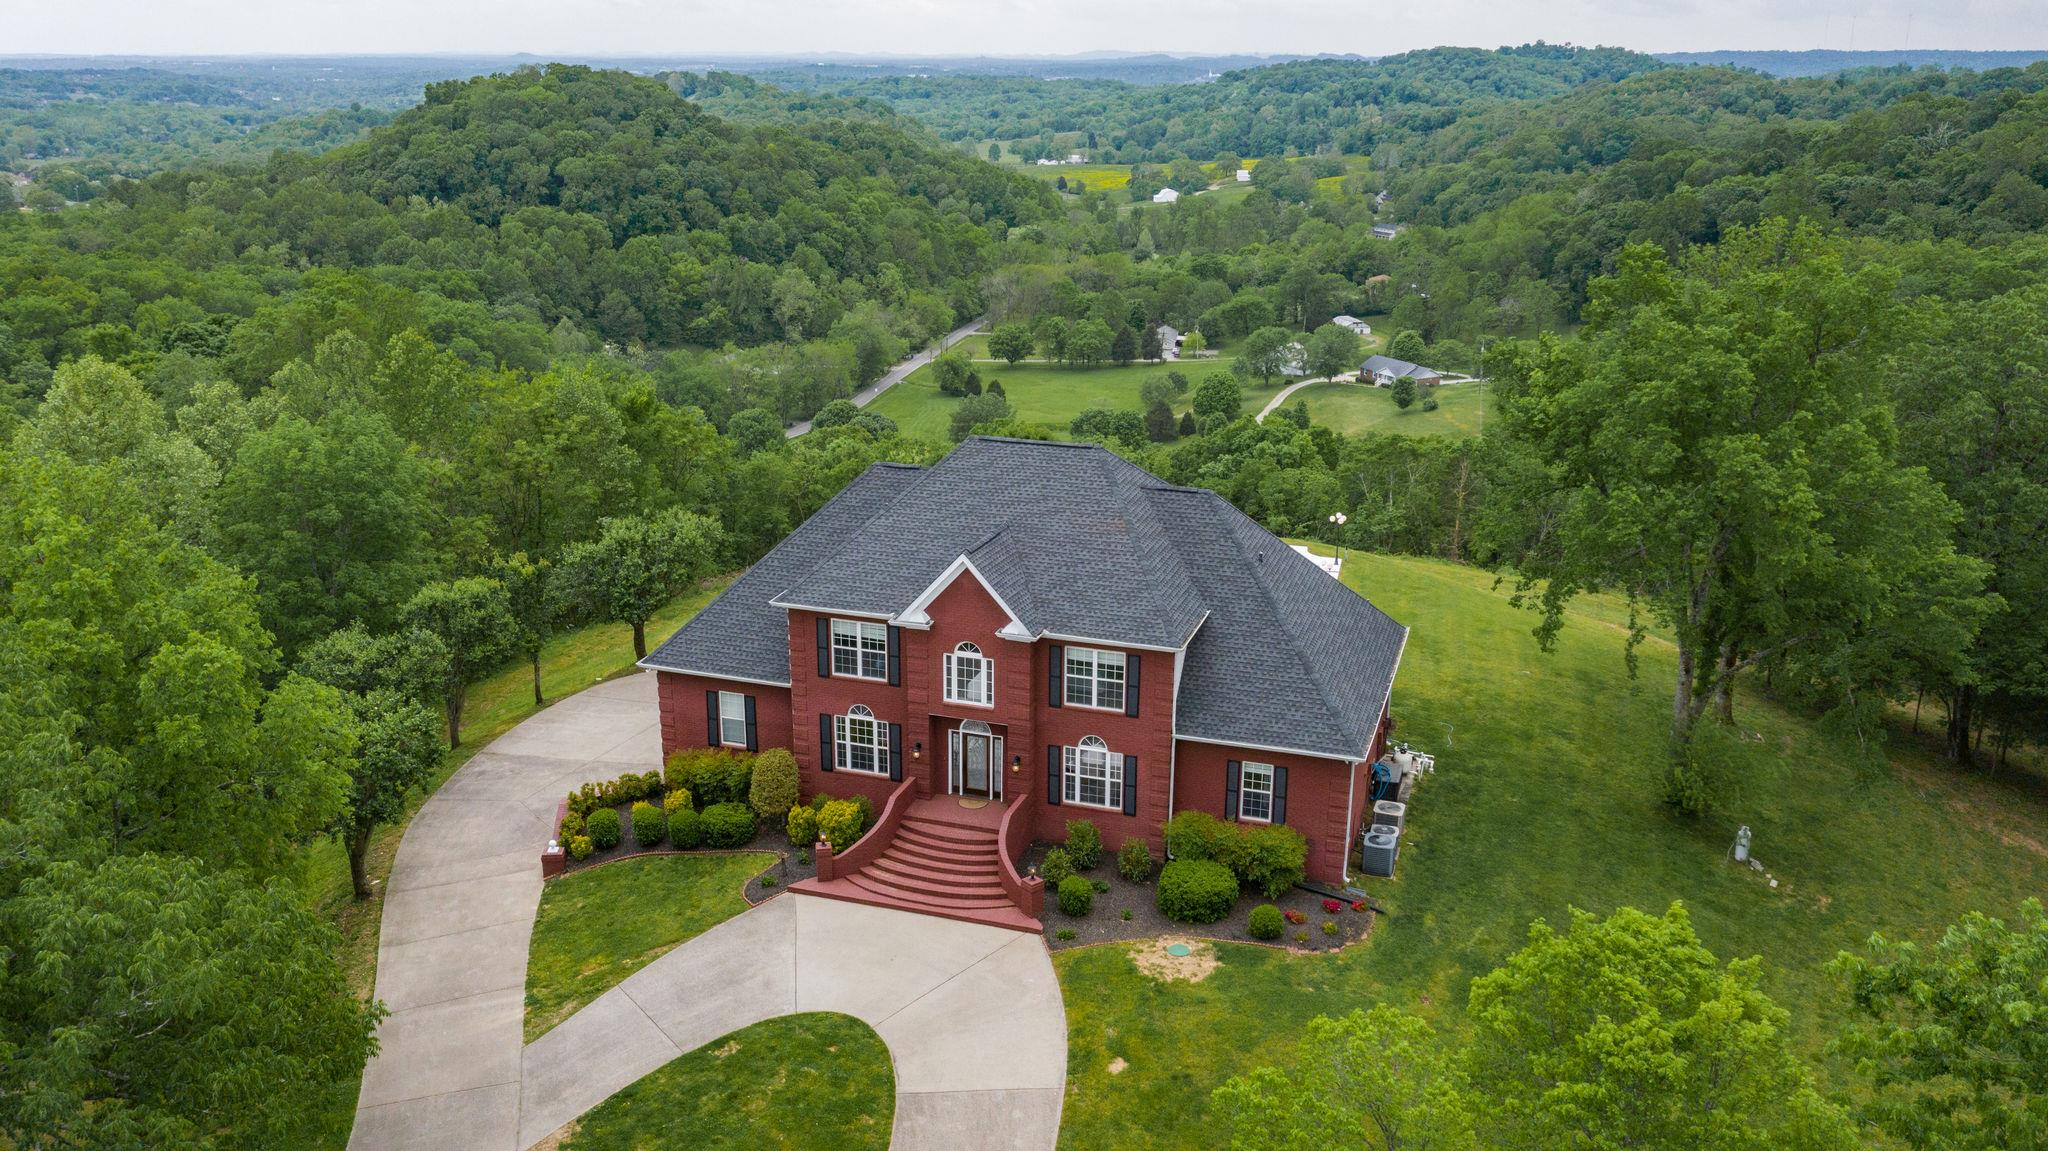 455 Pole Hill Rd, Goodlettsville, TN 37072 - Goodlettsville, TN real estate listing